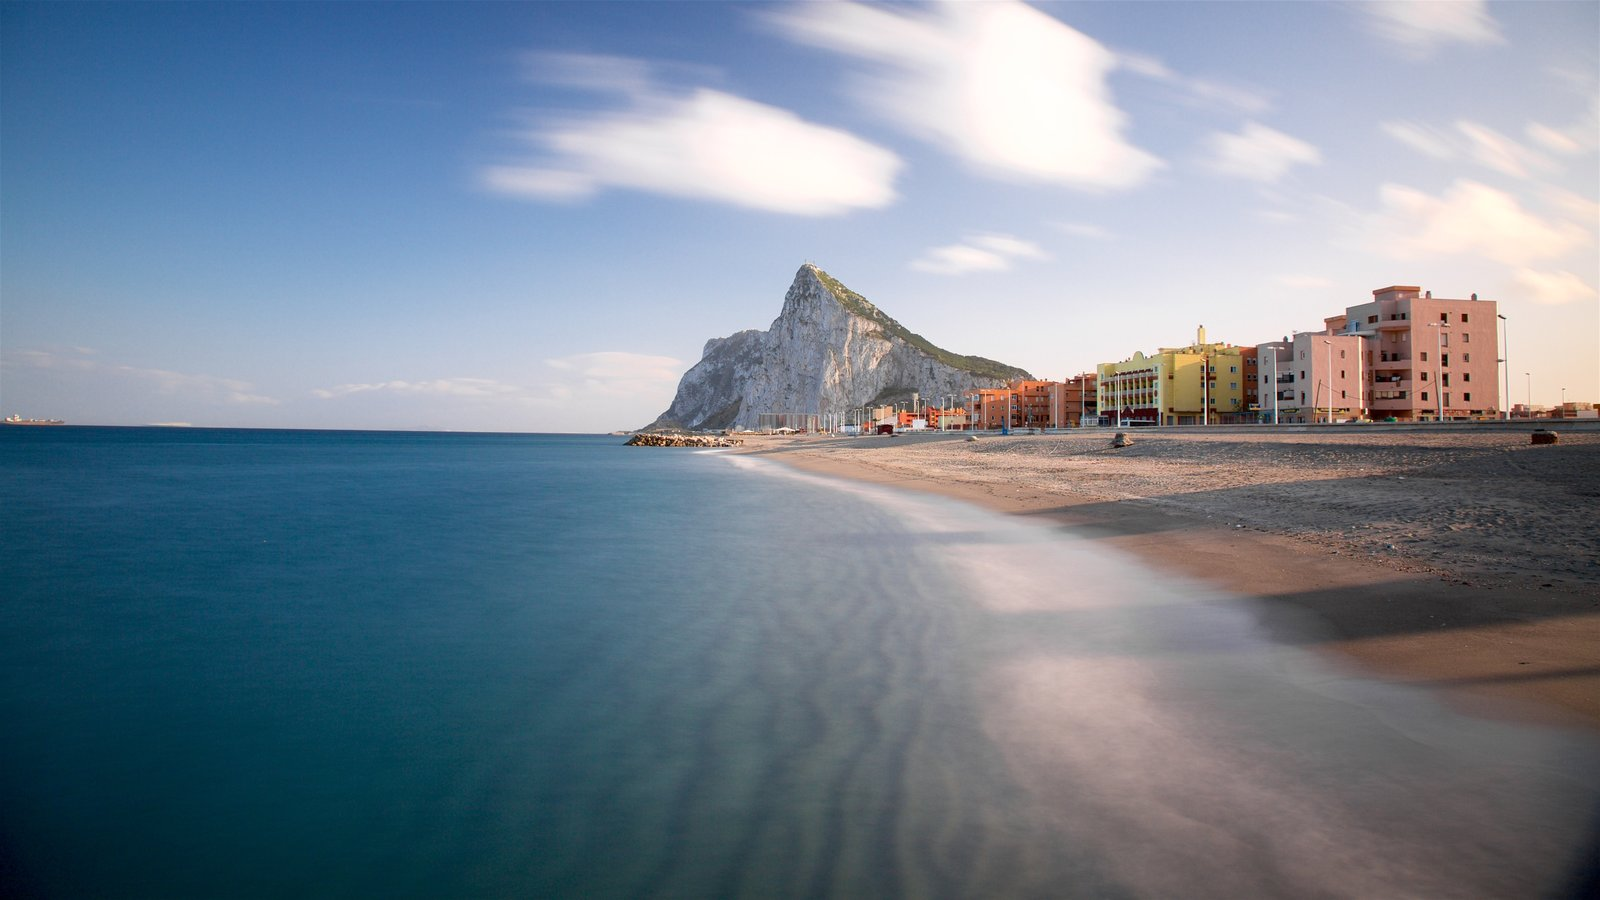 Gibraltar - The Rock Of Gibraltar